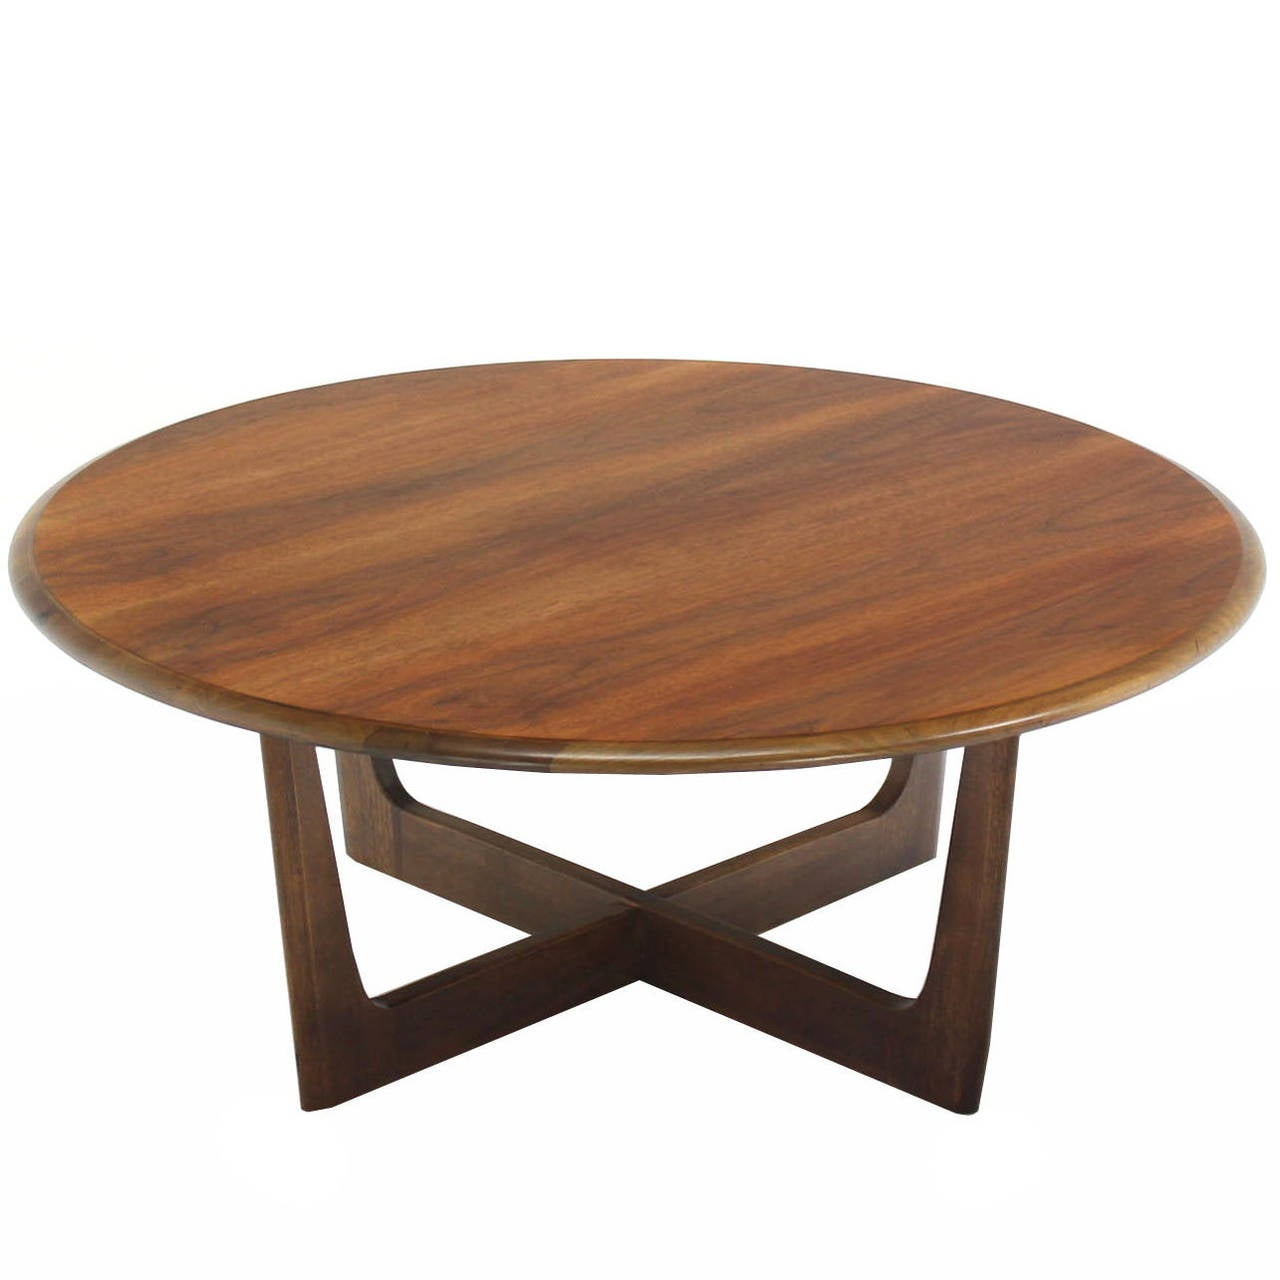 Walnut x base round coffee table for sale at 1stdibs Bases for coffee tables